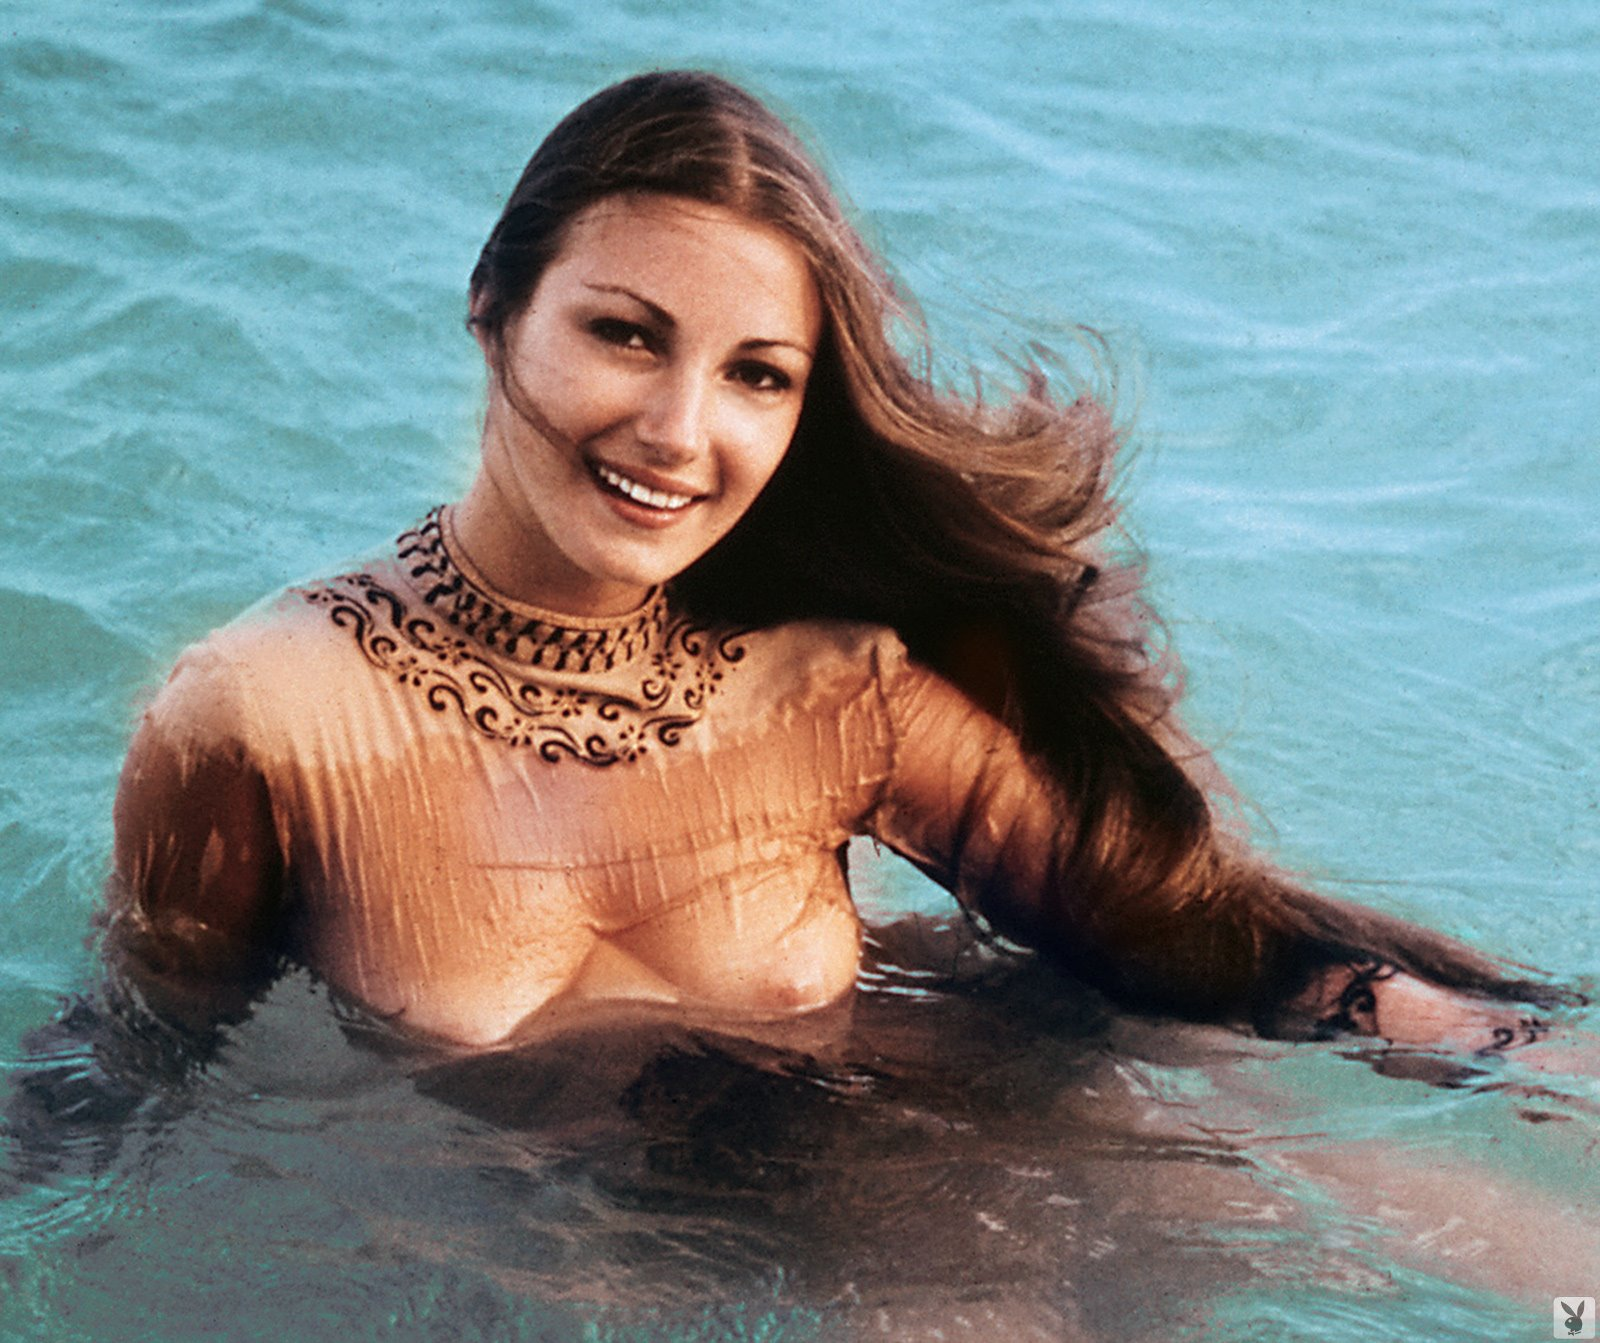 Jane seymour young naked #6